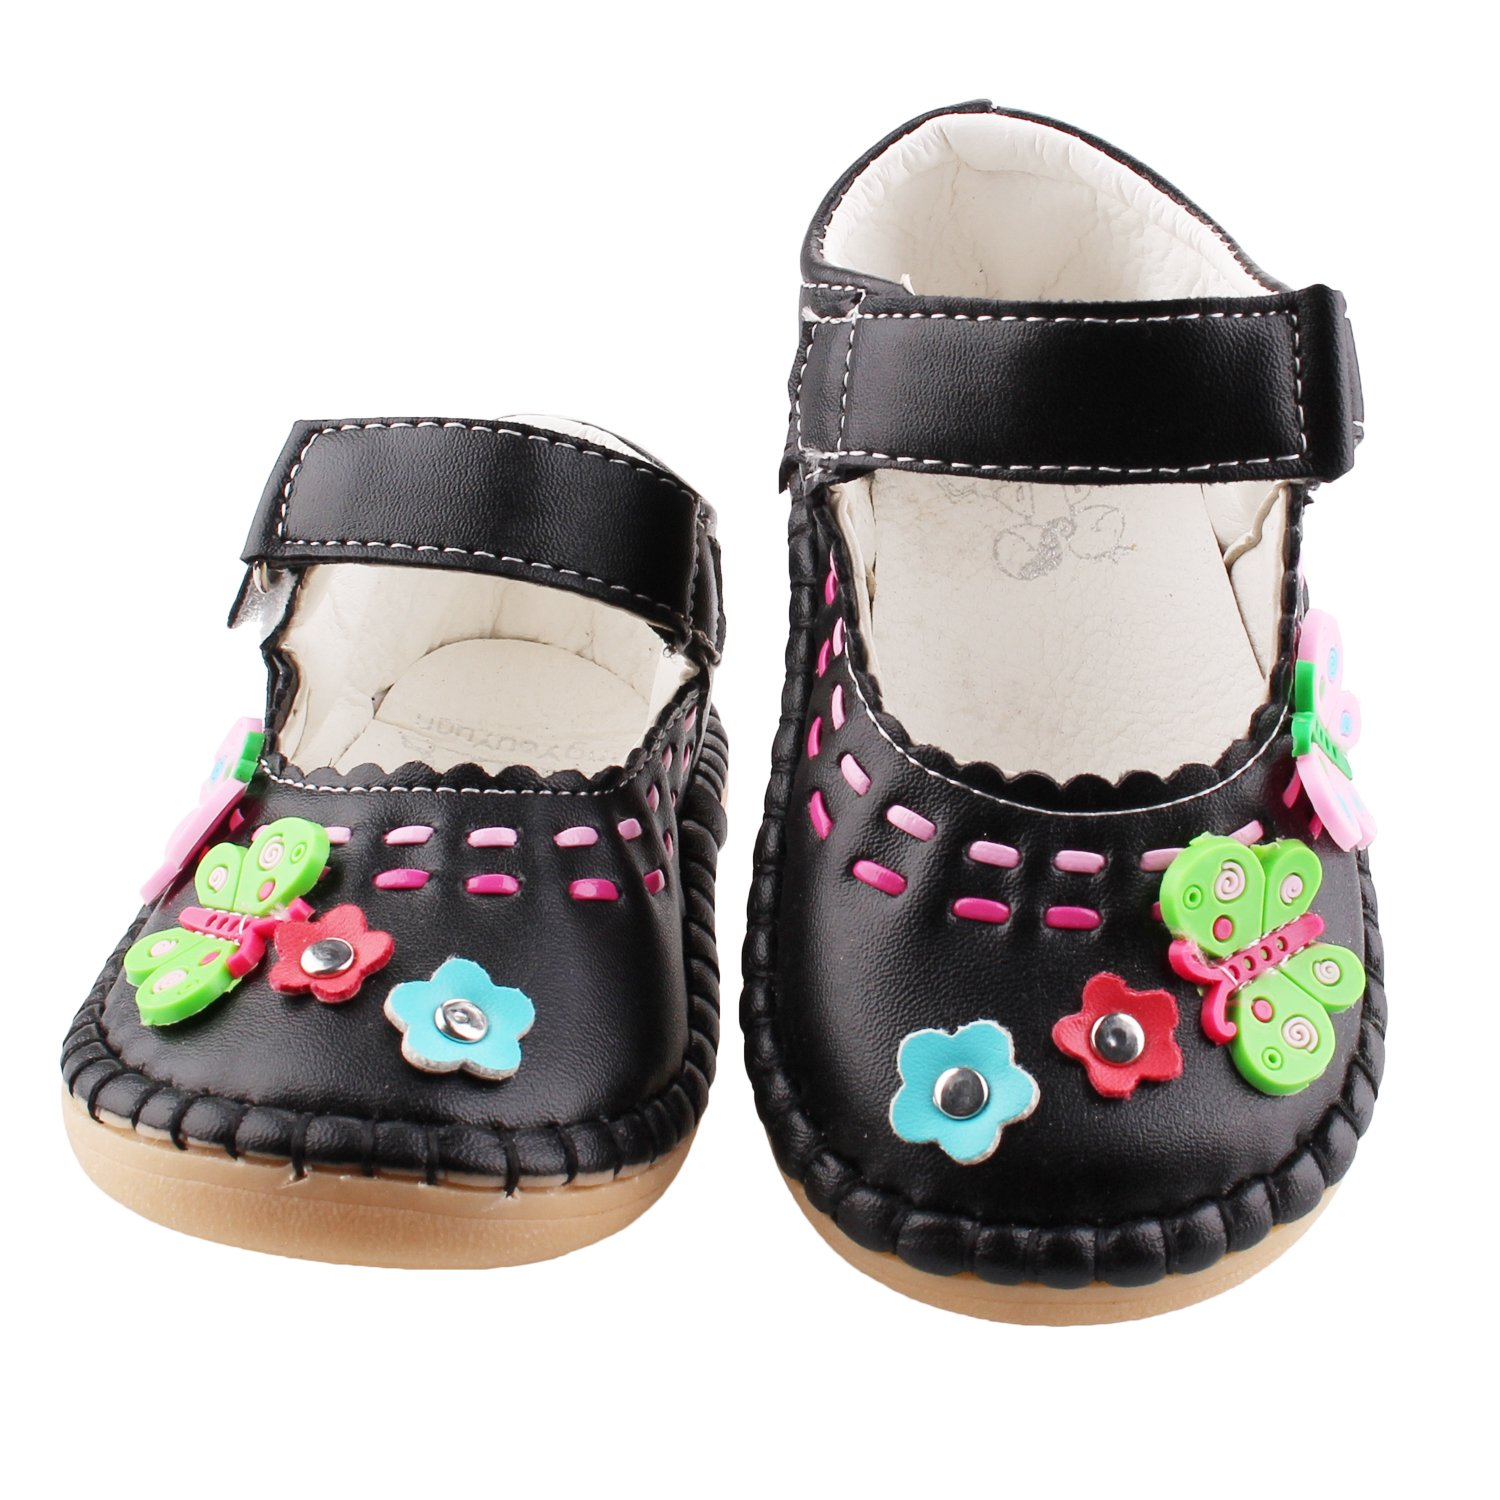 Milanao Baby Girls PU Leather Shoes Walking Soft Sole Crib Prewalker Shoes